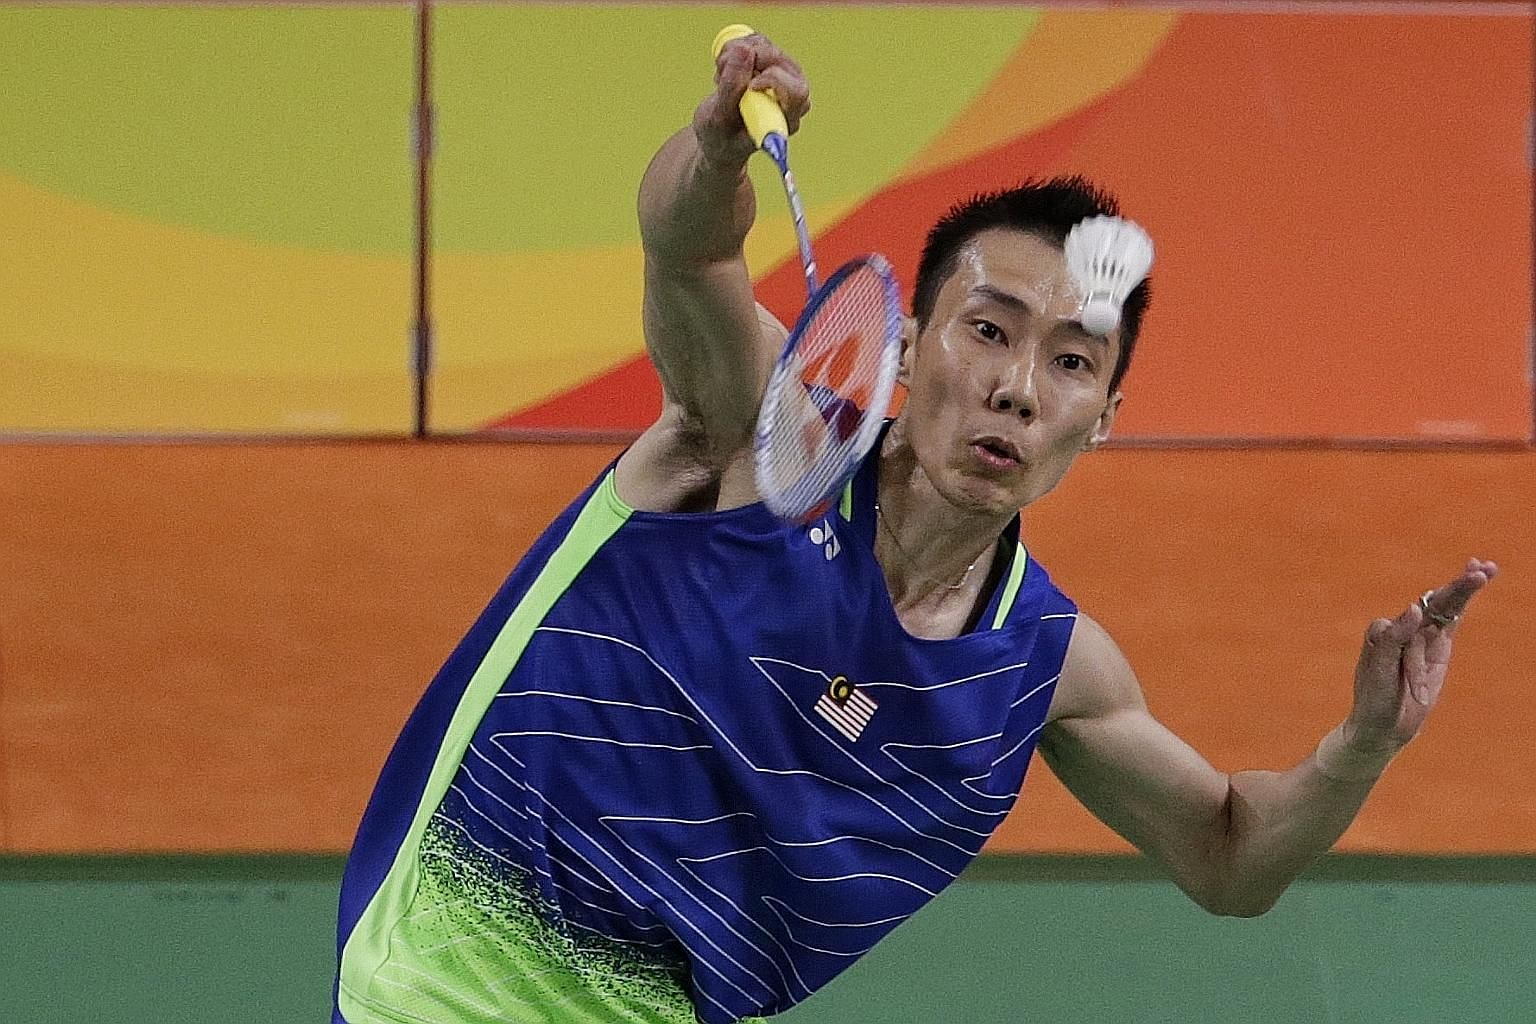 Lee Chong Wei may have to settle for his three Olympic silver medals, with the Malaysian's chances of playing in Tokyo next year diminishing. ST FILE PHOTO